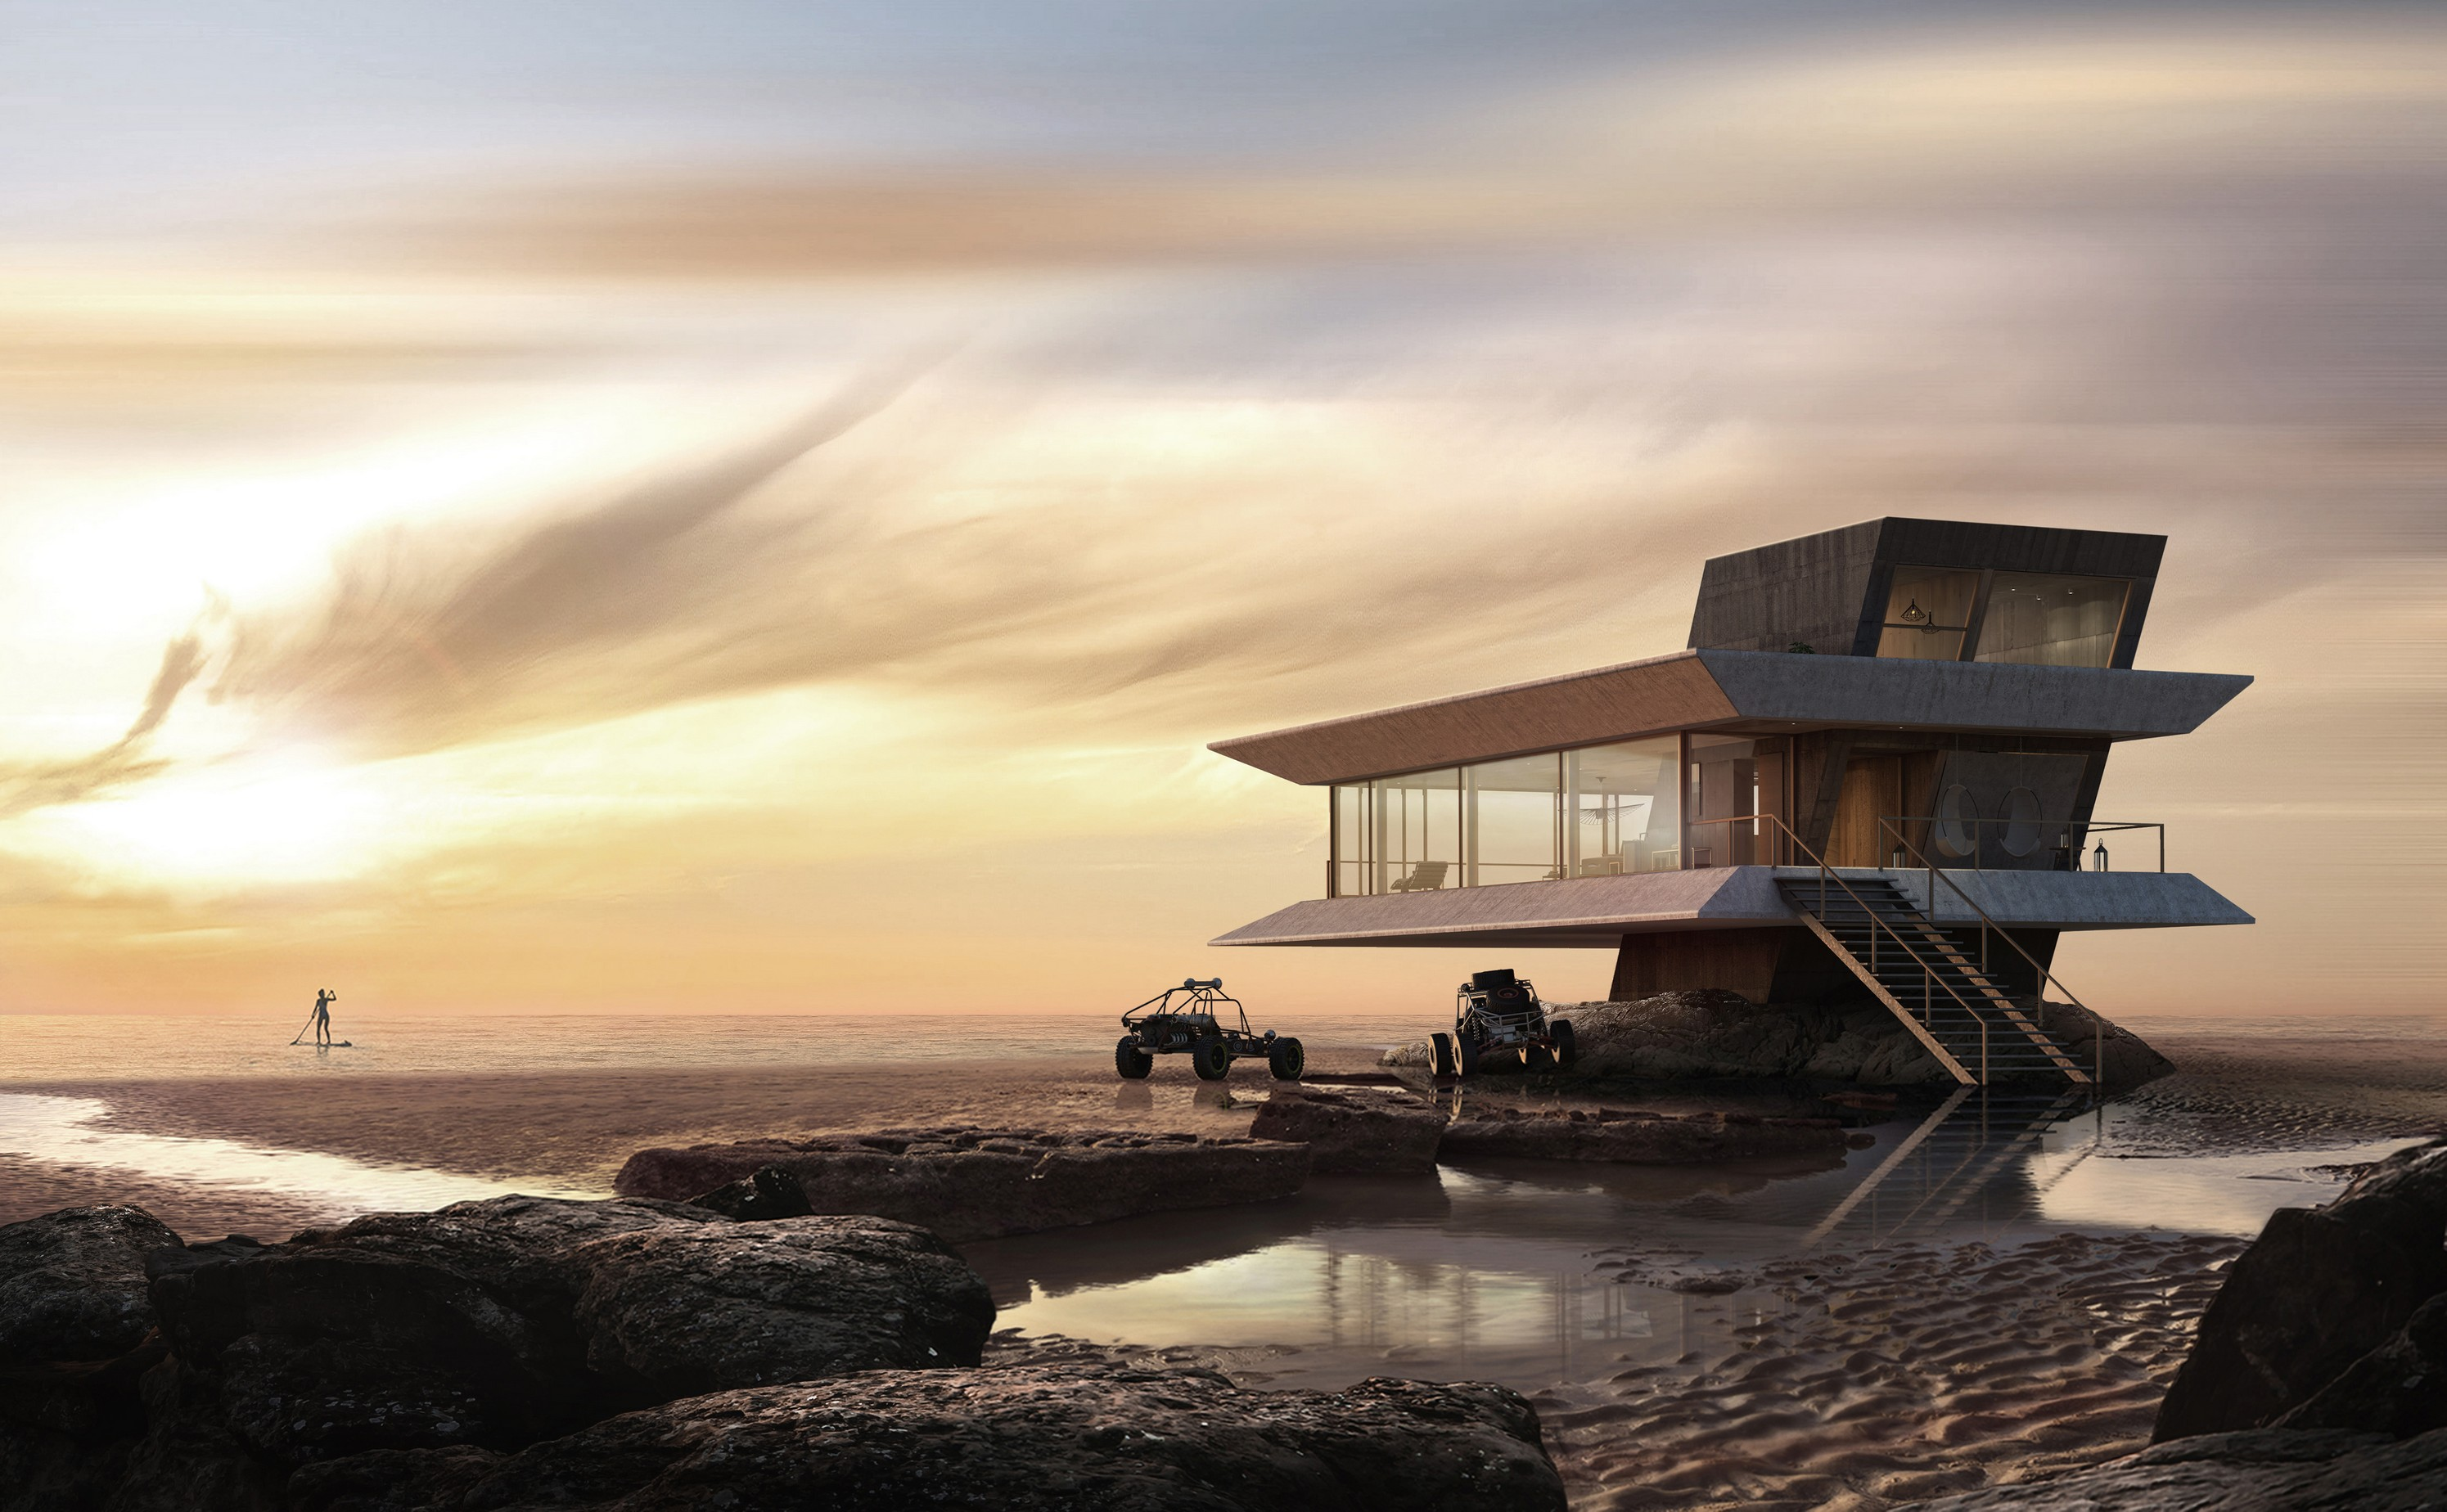 This futuristic beach house design by Atelier Monolit